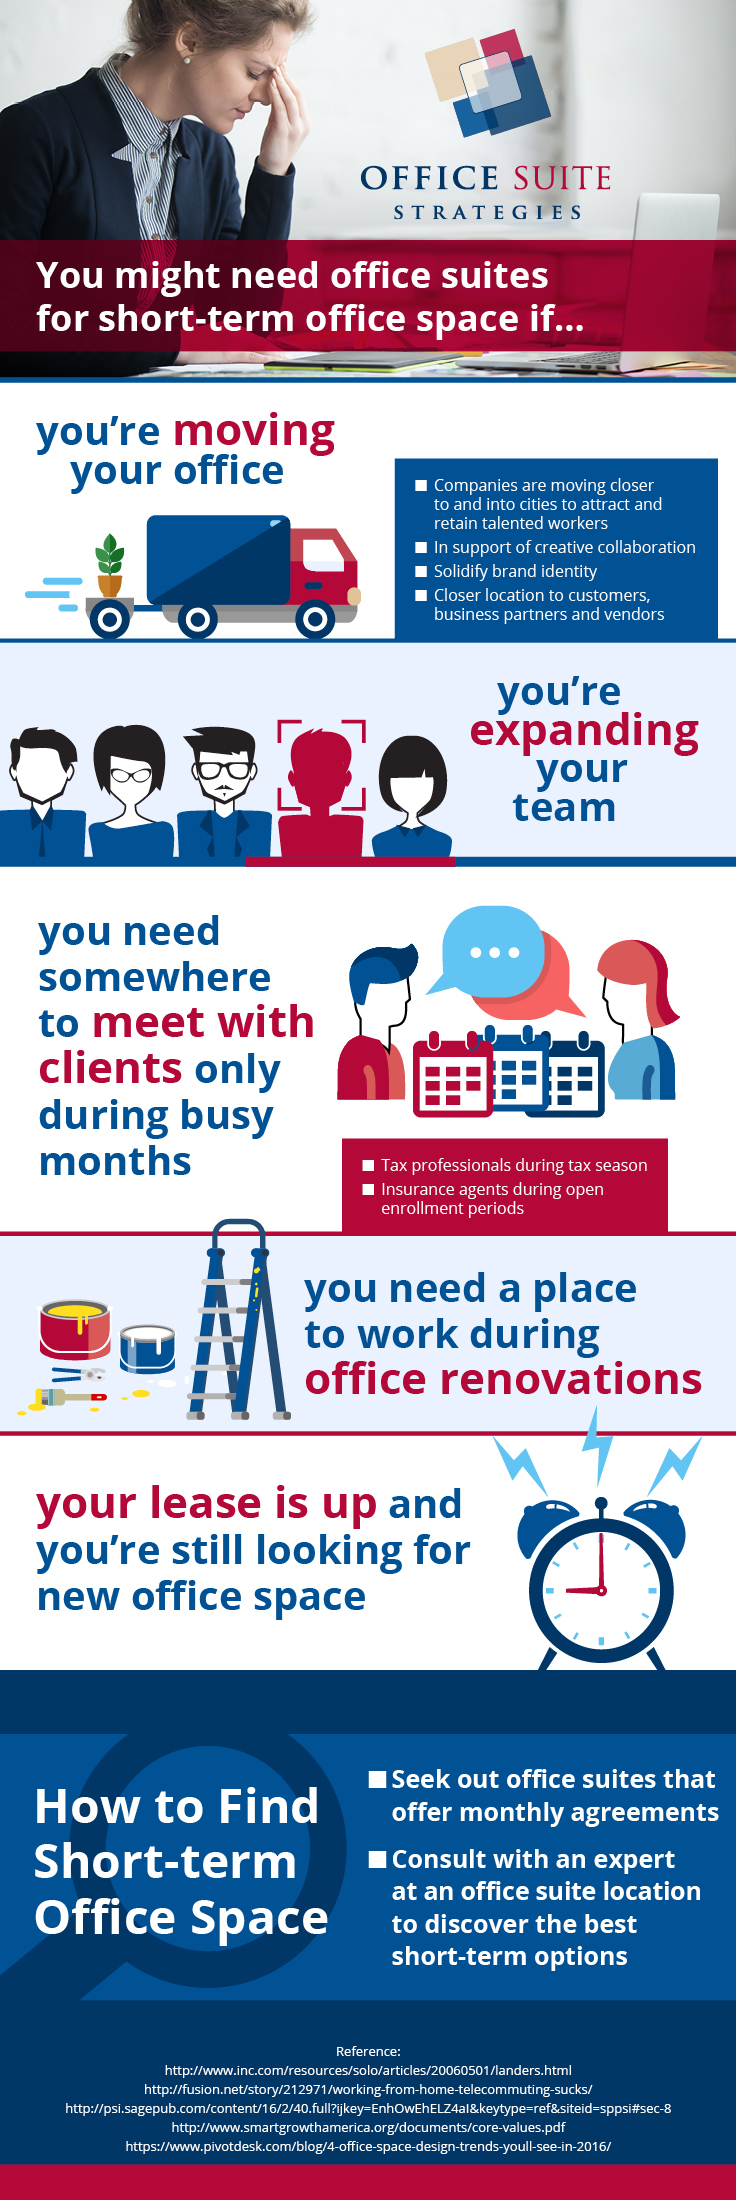 Short-Term Office Space Solutions Infographic